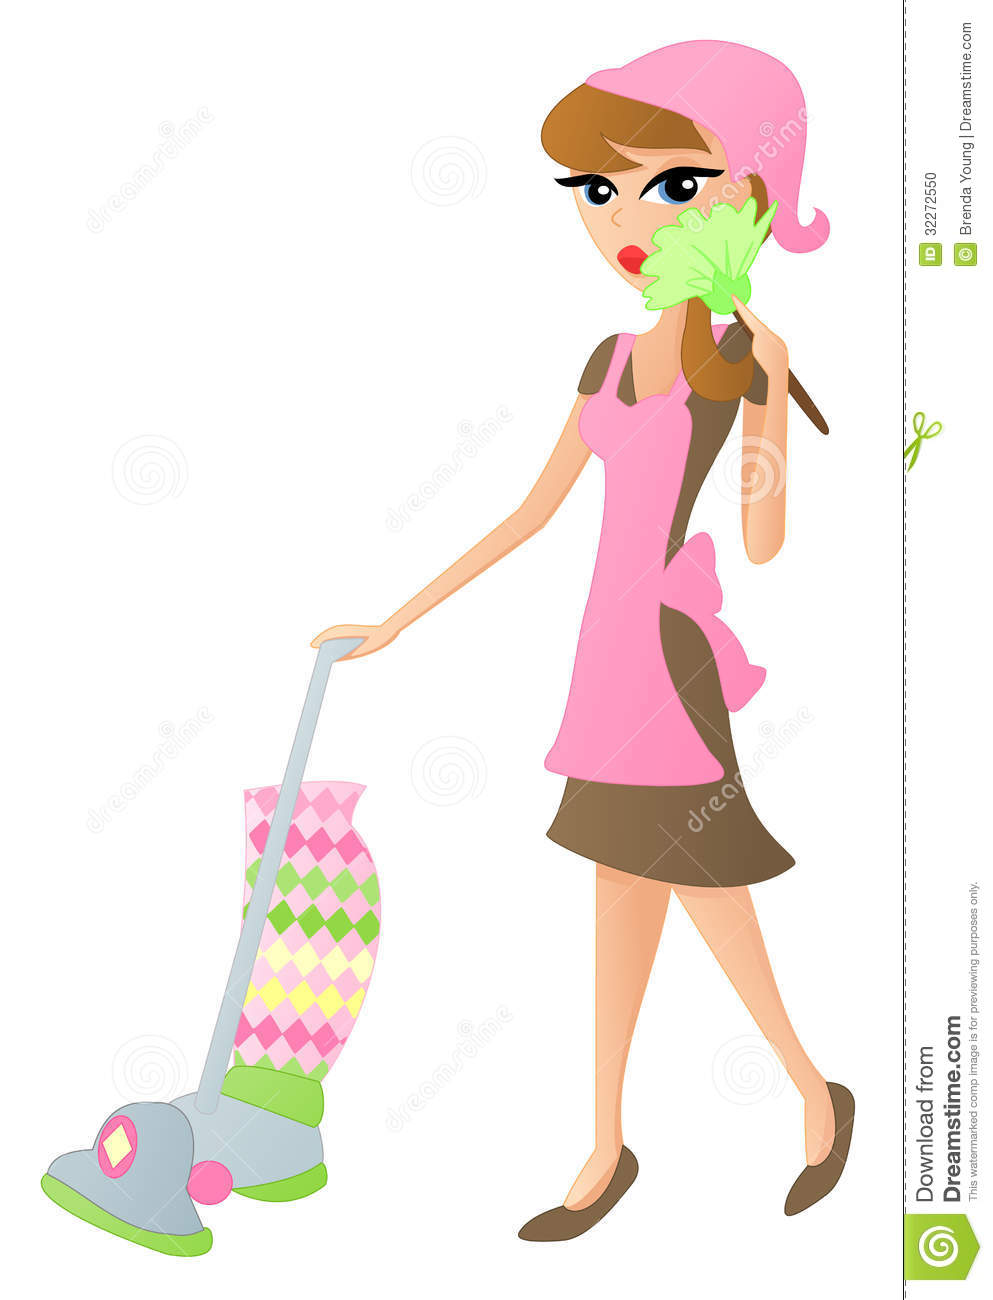 Old clipart cleaning lady Lady Cartoon  Cleaning Clipart